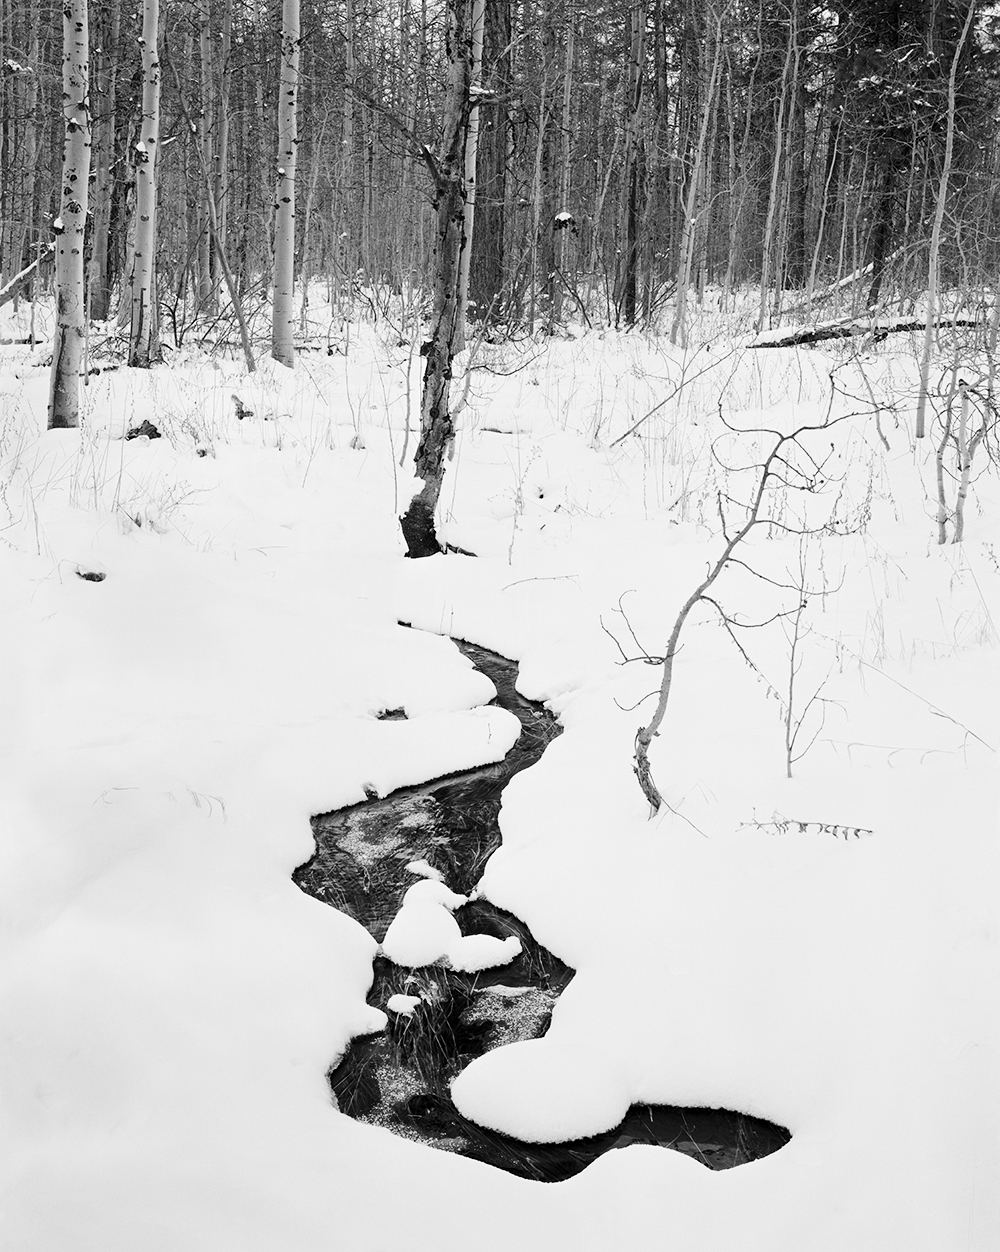 Rivulet and Aspens 4x5 BW.jpg